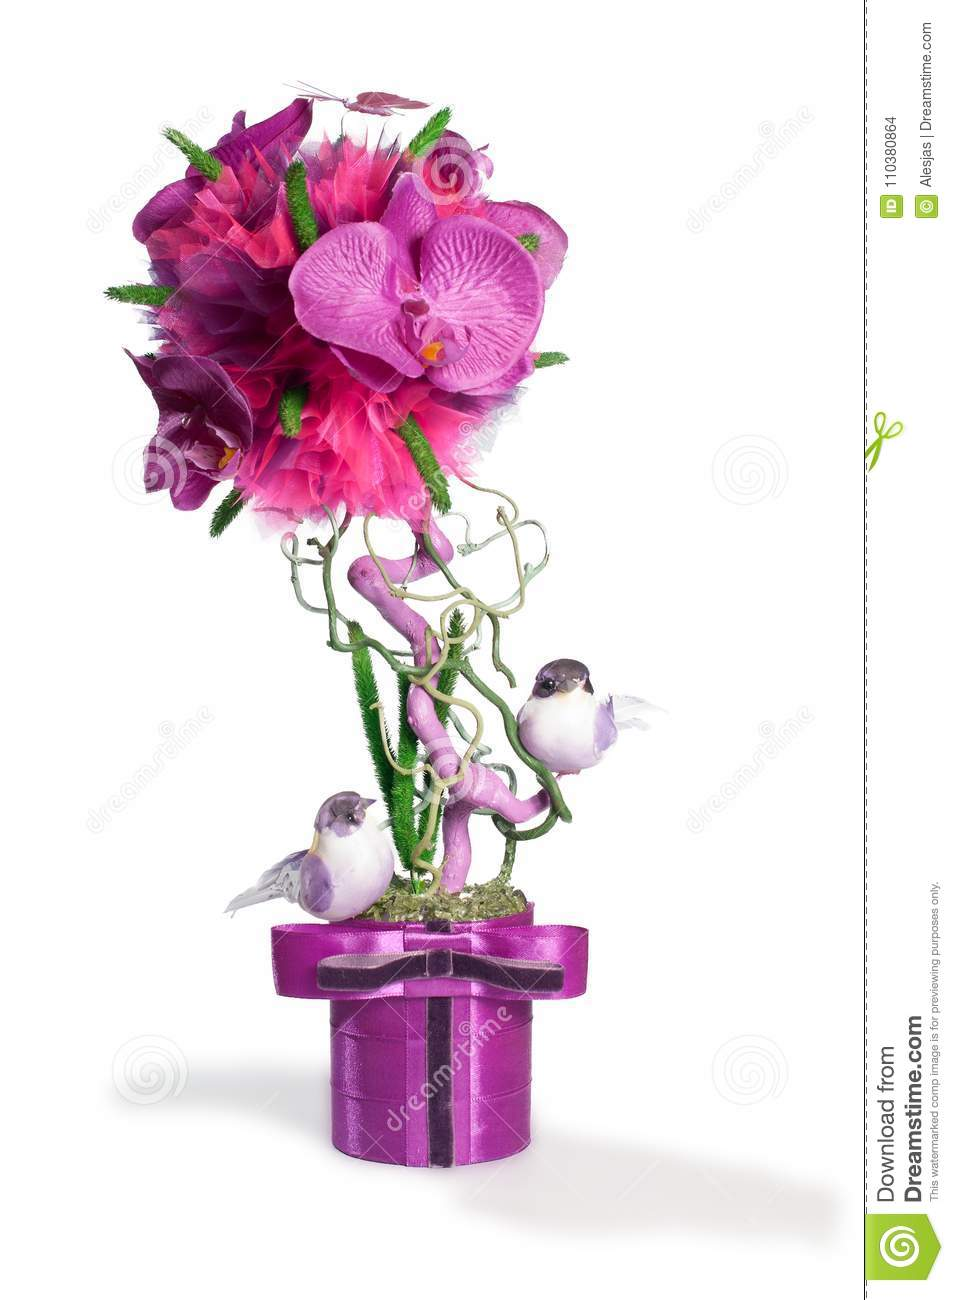 Floral Topiary In The Pink Colors With Birds Over White Background Stock Photo Image Of Background Colorful 110380864